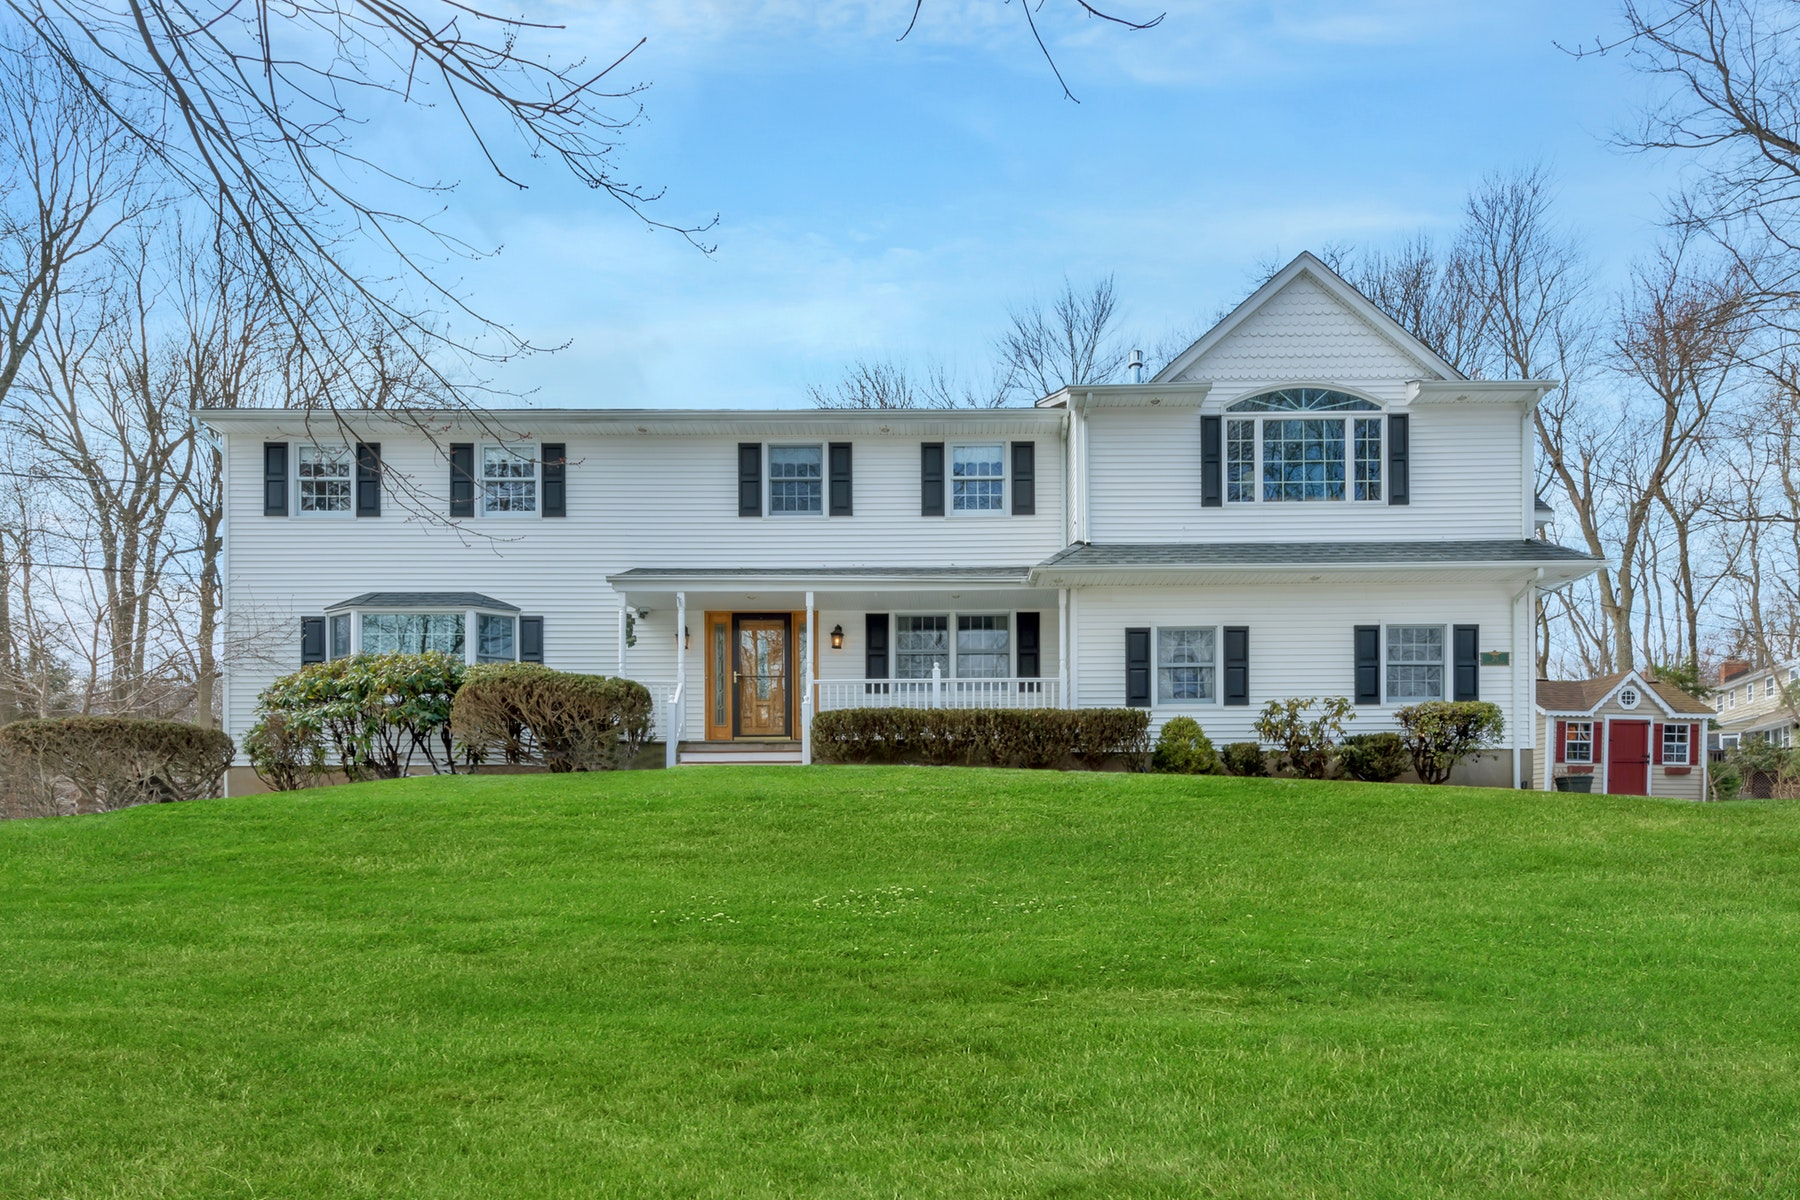 Single Family Home for Sale at A Gracious Center Hall Colonial. 20 North Avenue, Montvale, New Jersey 07645 United States